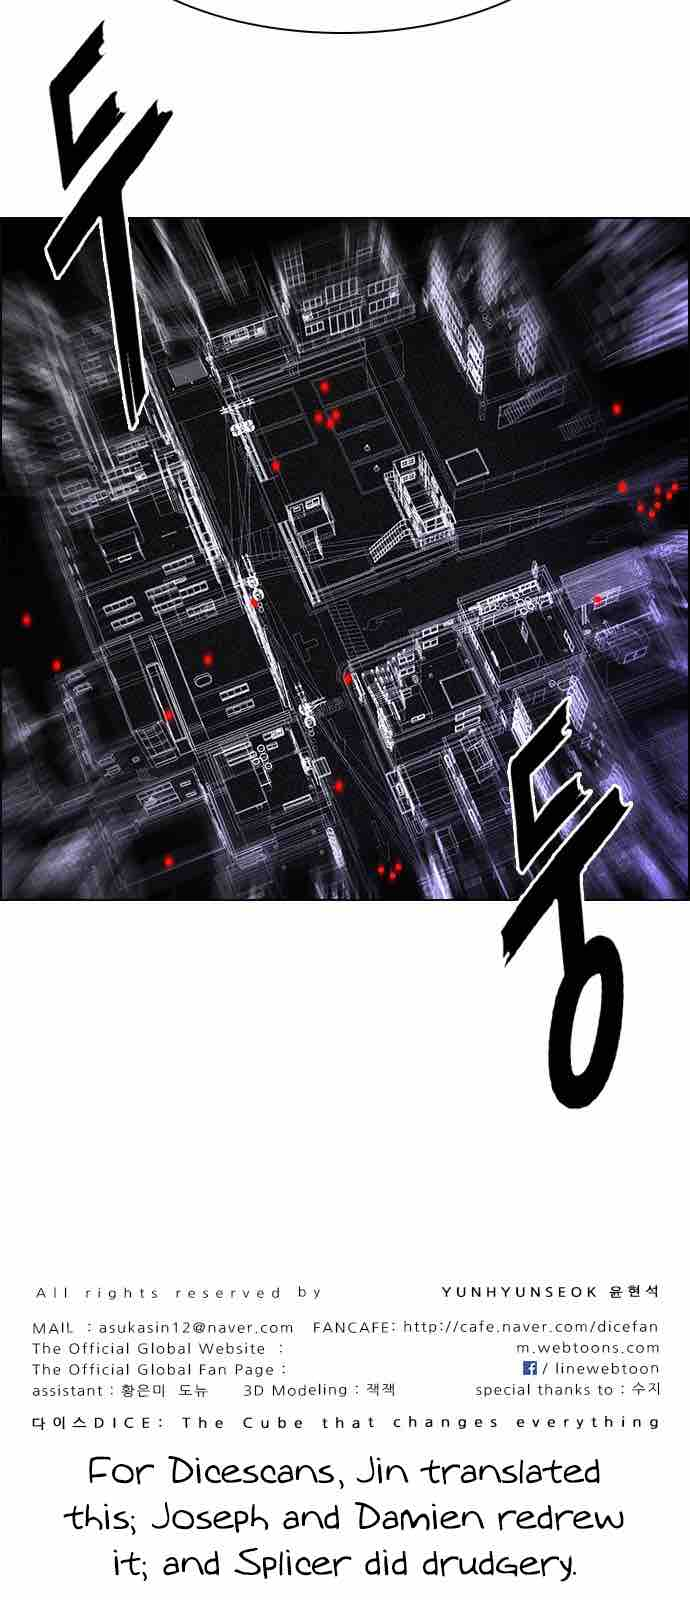 dice_the_cube_that_changes_everything_209_61